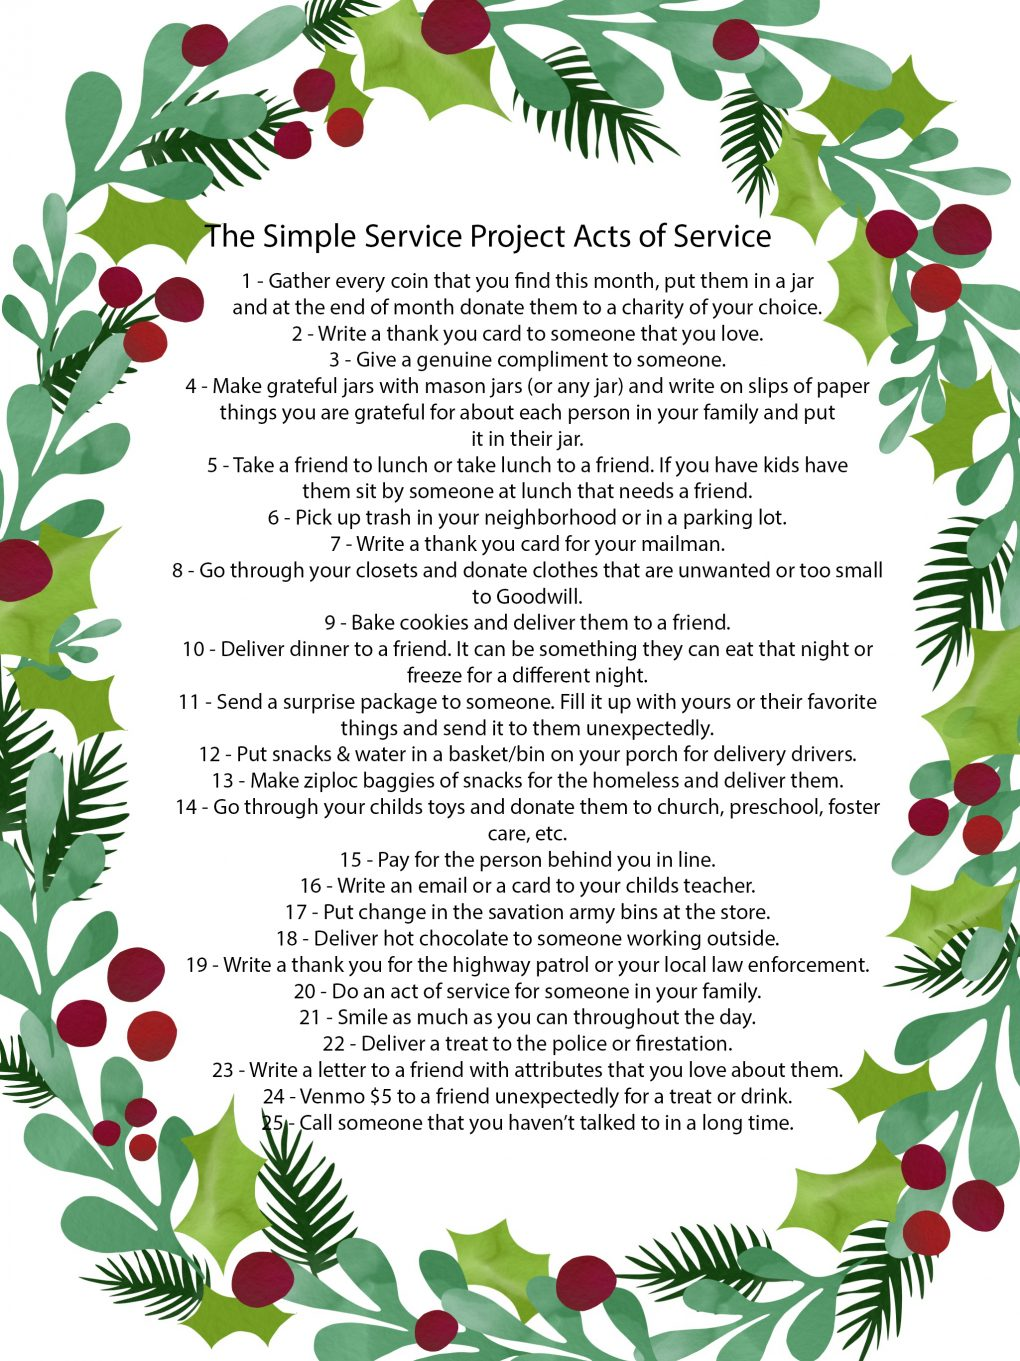 Looking to give back this holiday season? Utah Style Blogger Dani Marie is sharing her acts of service project- the Simple Service Project. See how to give back here!